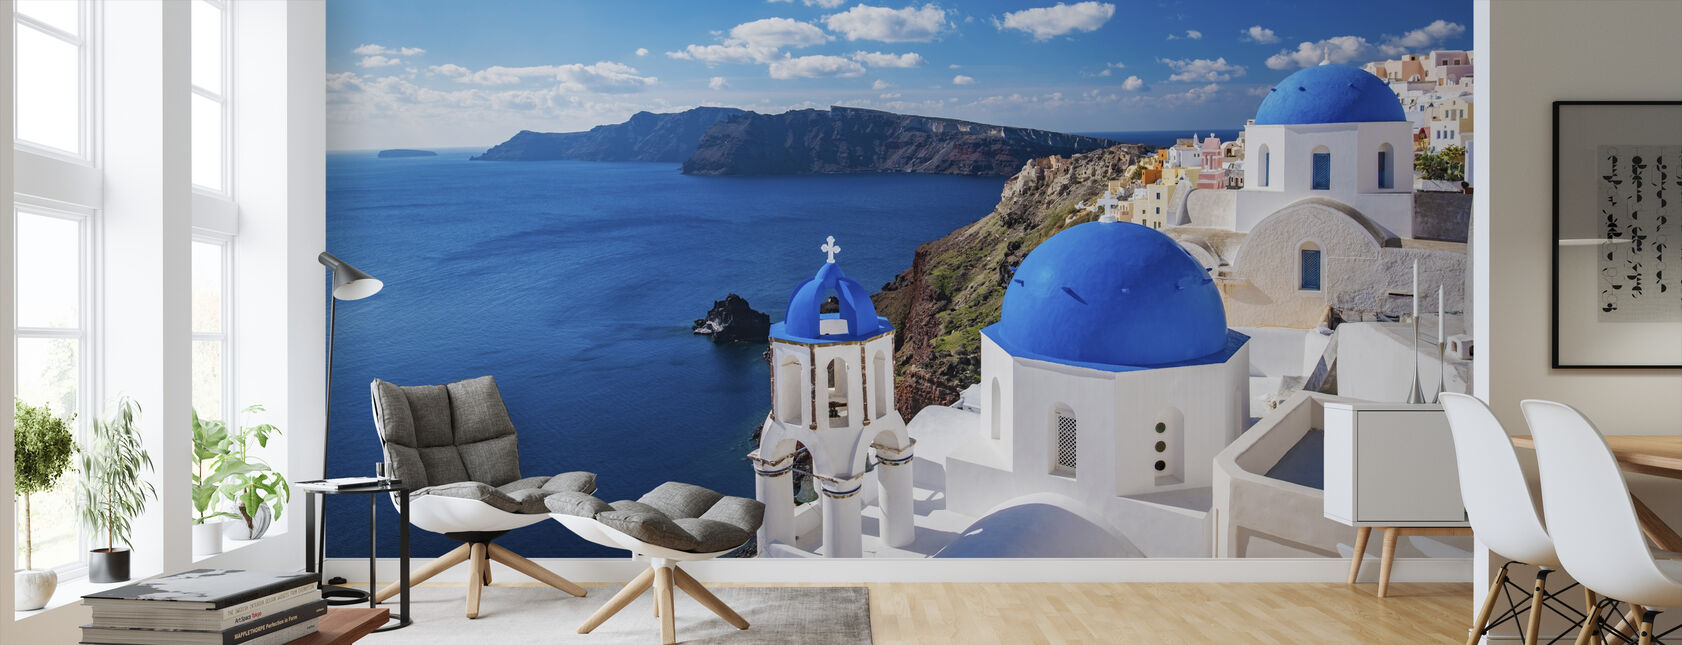 Santorini Church - Wallpaper - Living Room